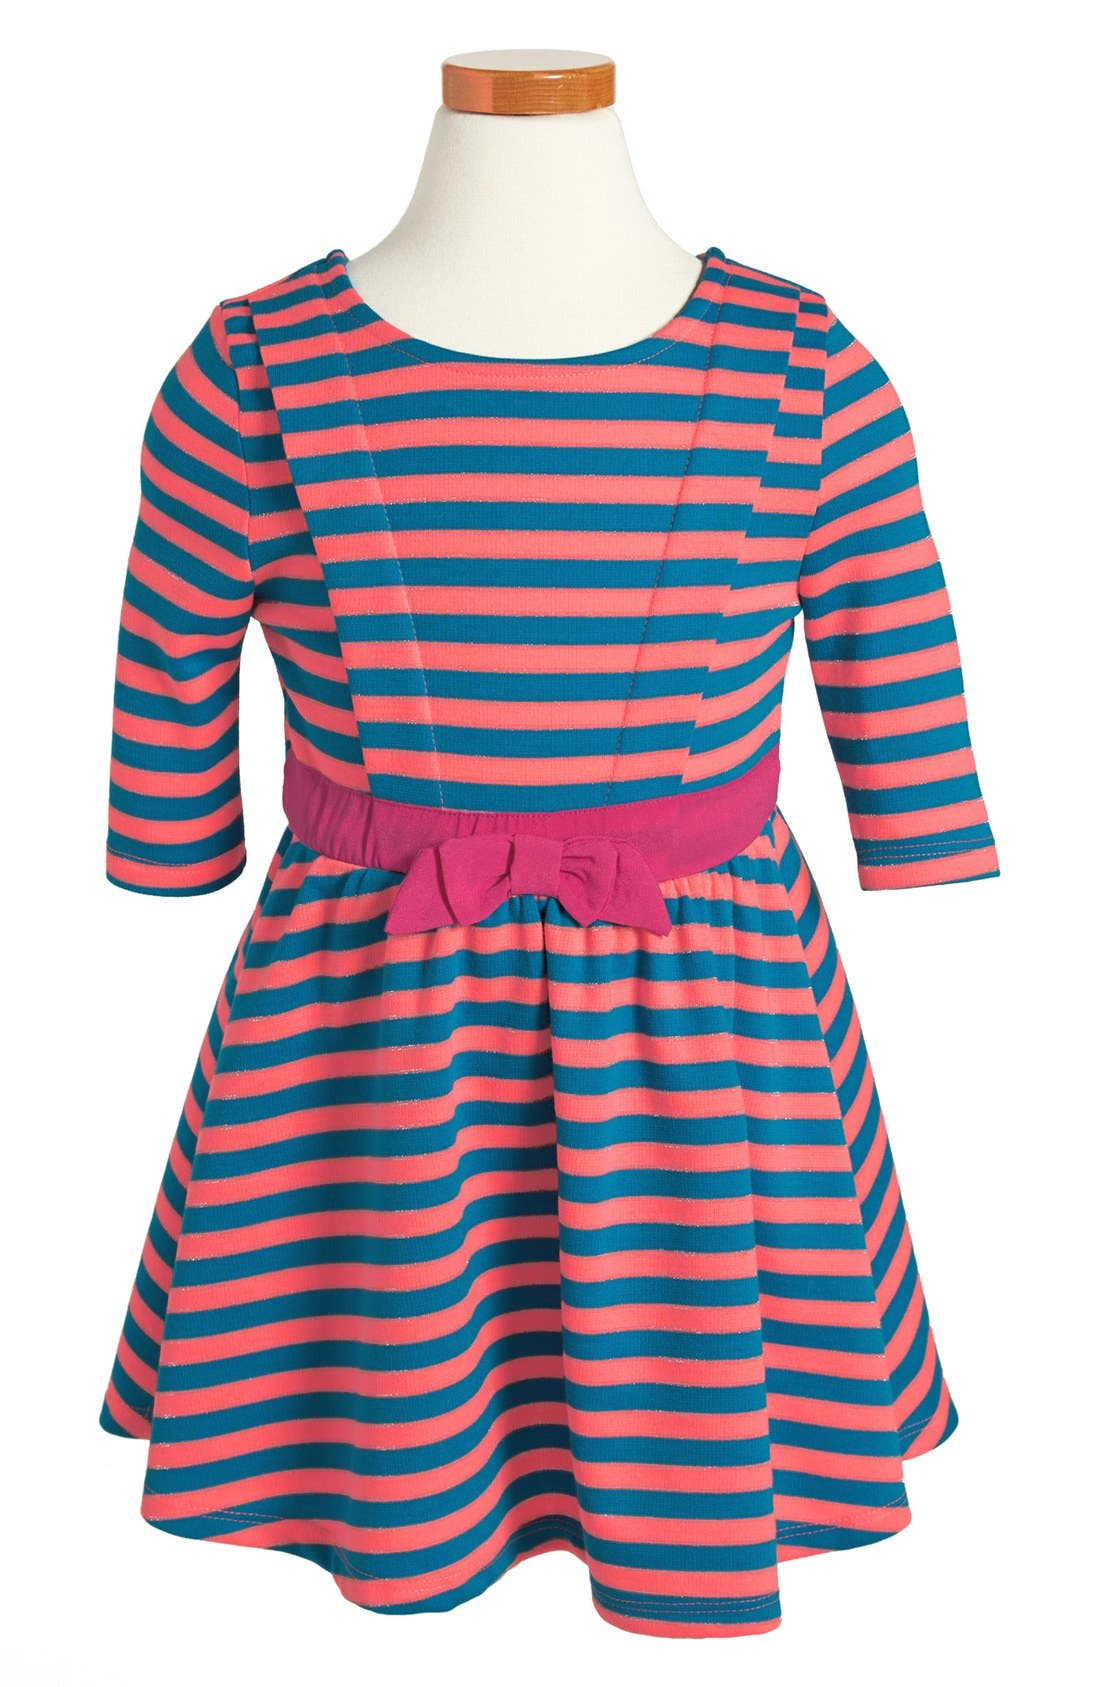 Main Image - Weavers Stripe Ponte Three Quarter Sleeve Dress (Toddler Girls)